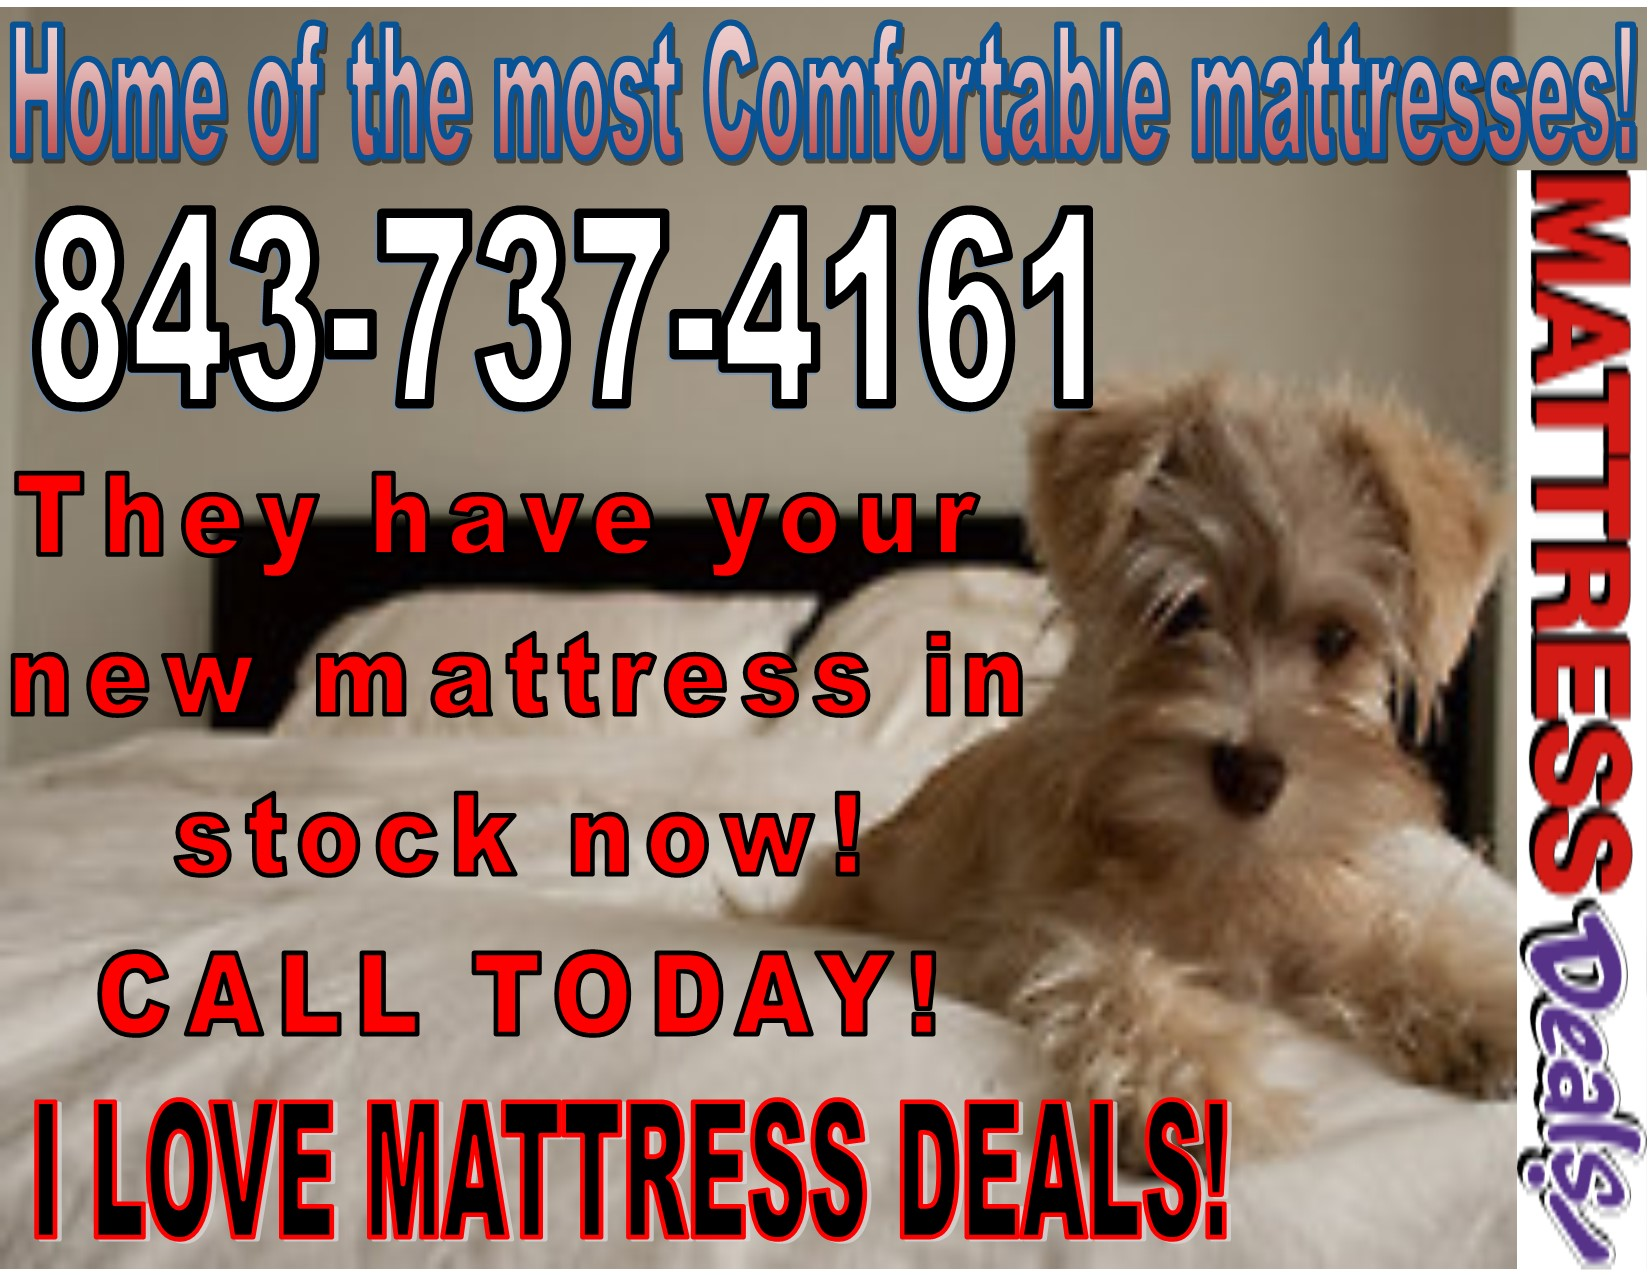 Mattress Deals image 39